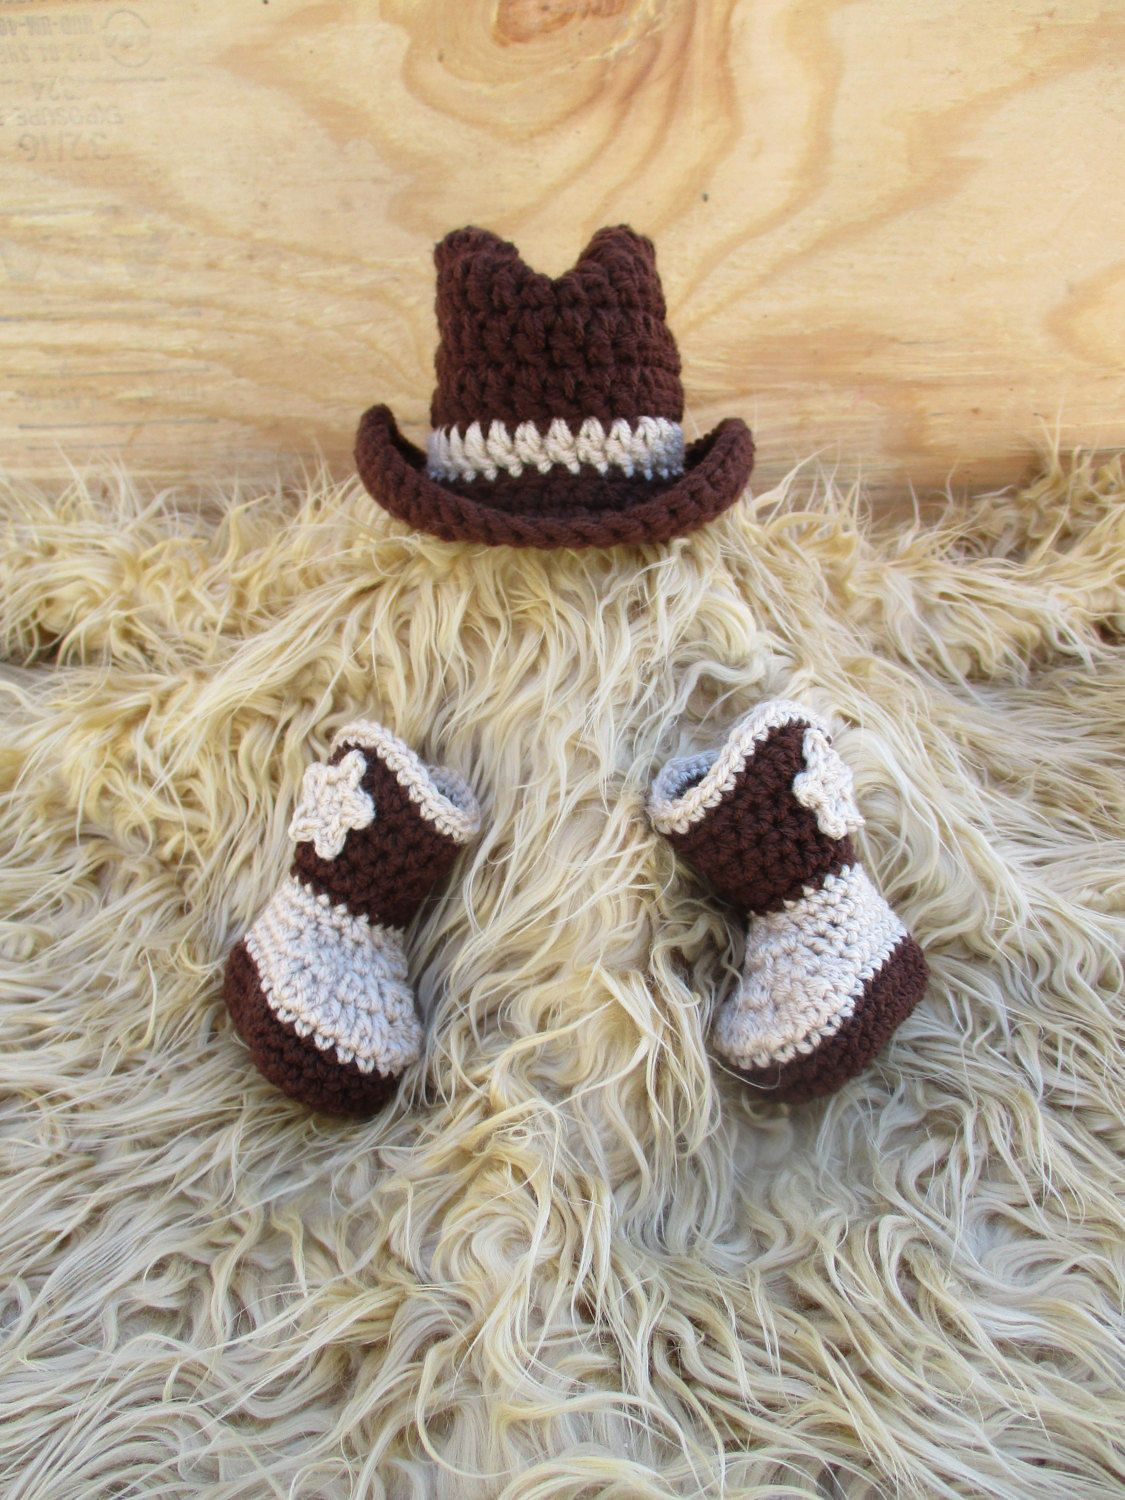 86e9abc0 Newborn Cowboy Outfit Cowboy Hat and Boots Set Knit Cowboy Hat Crochet Cowboy  Hat and Boots Baby Cowboy Outfit Photo Prop Cowboy Photo Prop by Etvy on  Etsy